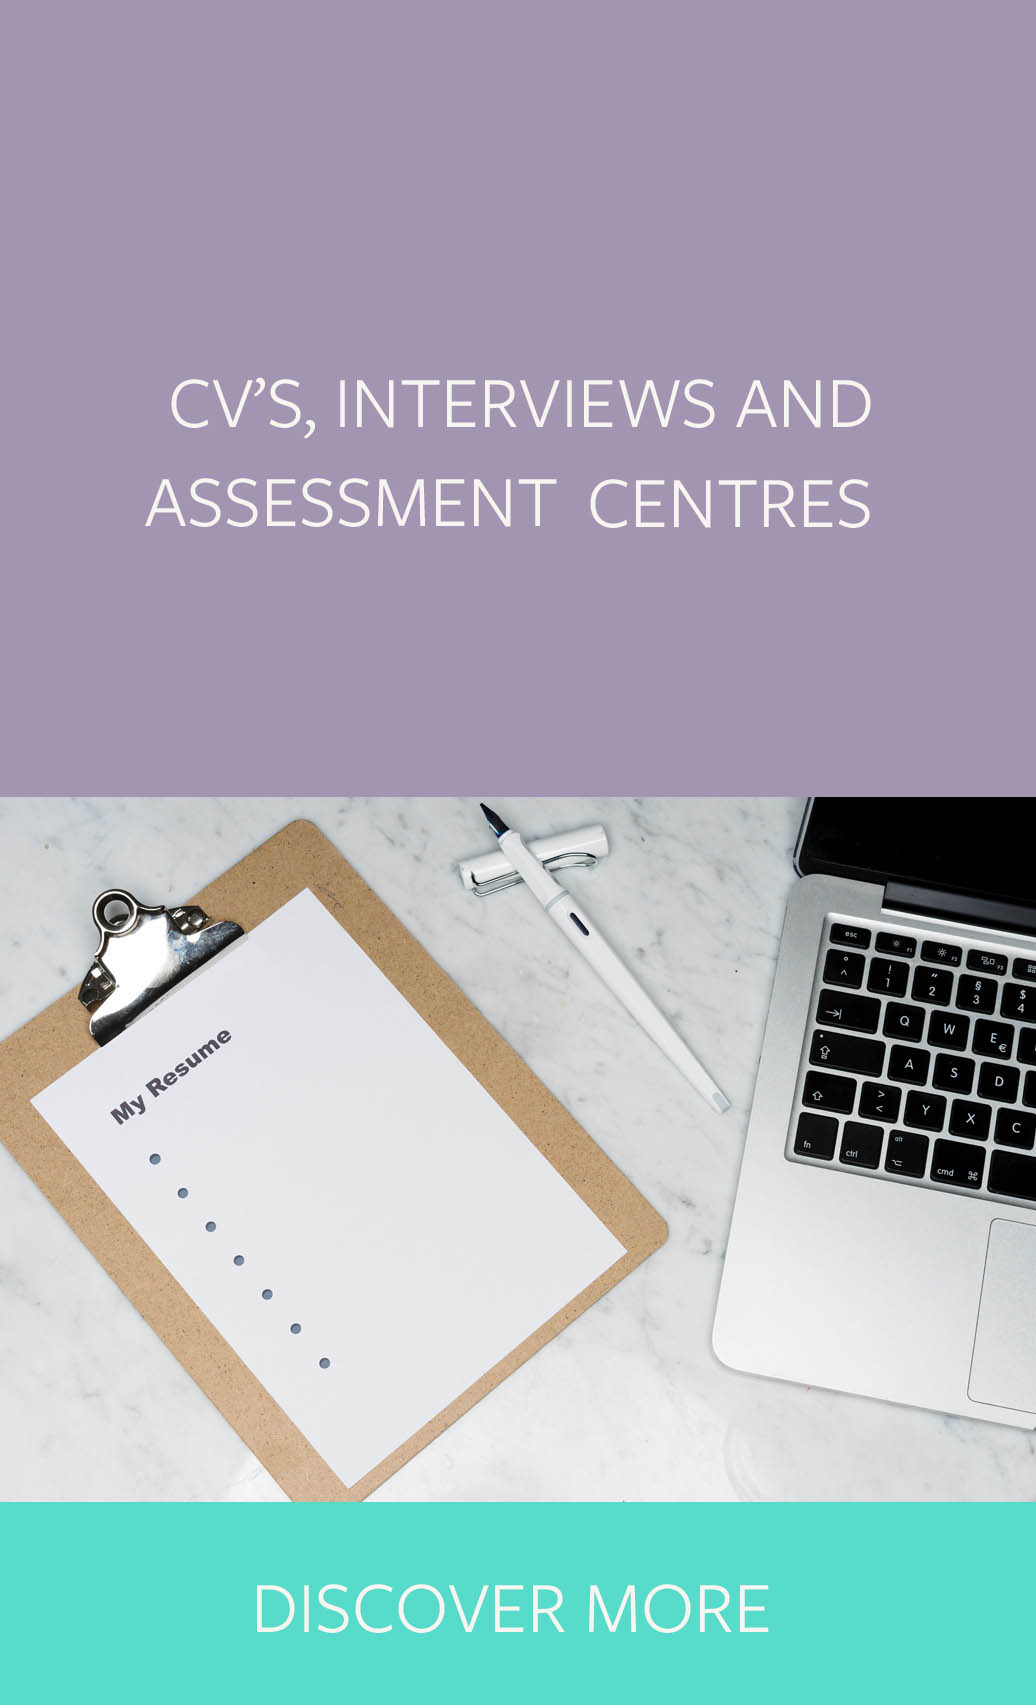 CV's interviews and assessment centres